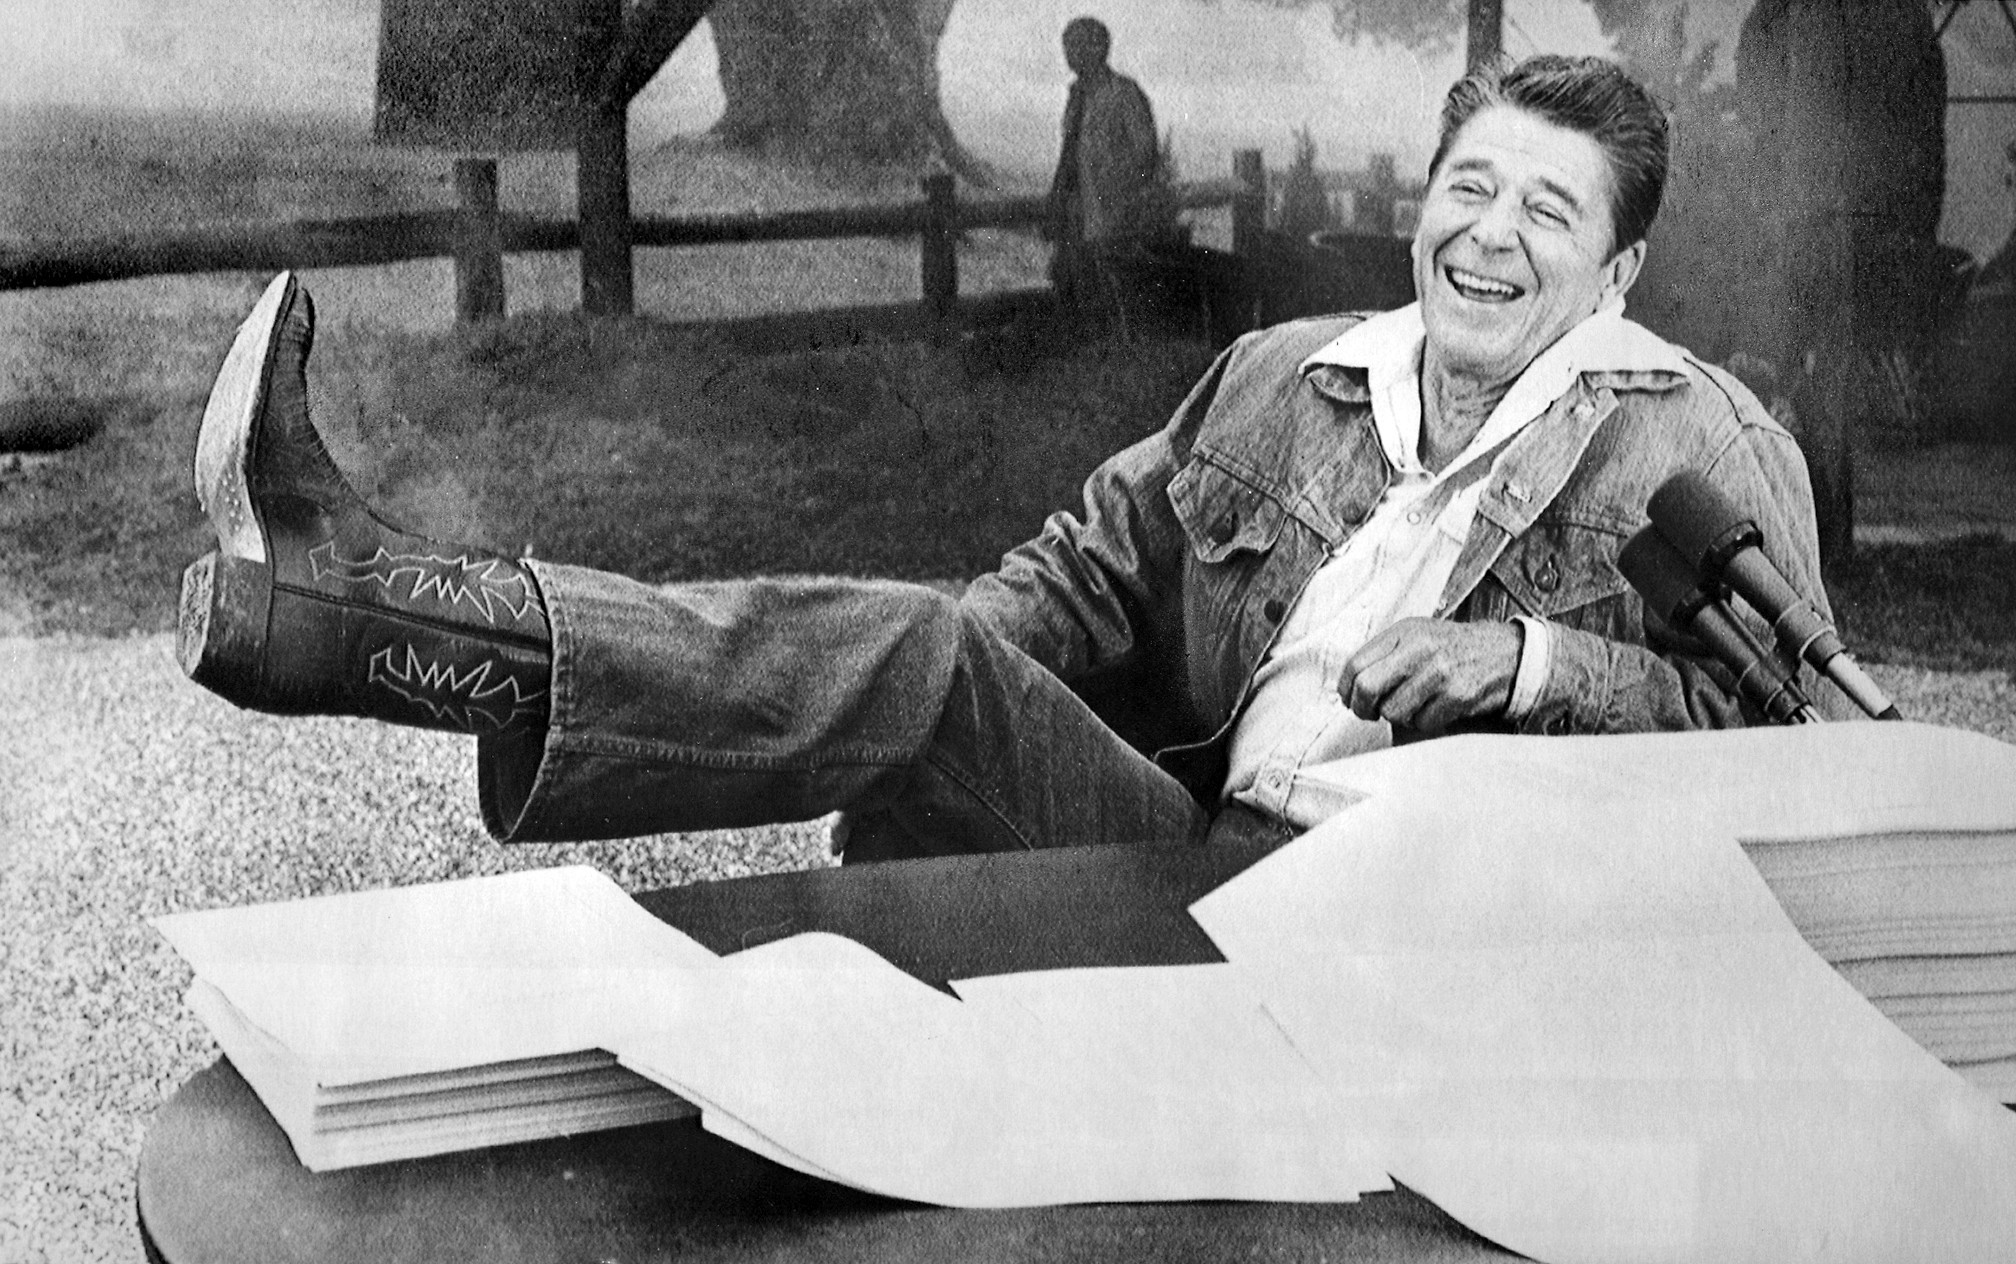 While in Santa Barbara in the summer of 1981, President Reagan shows his boot to reporters who asked if he had any problems with the bubonic plague threat in the area. In front of him lies the economic tax relief bill and budget that he signed while on vacation.